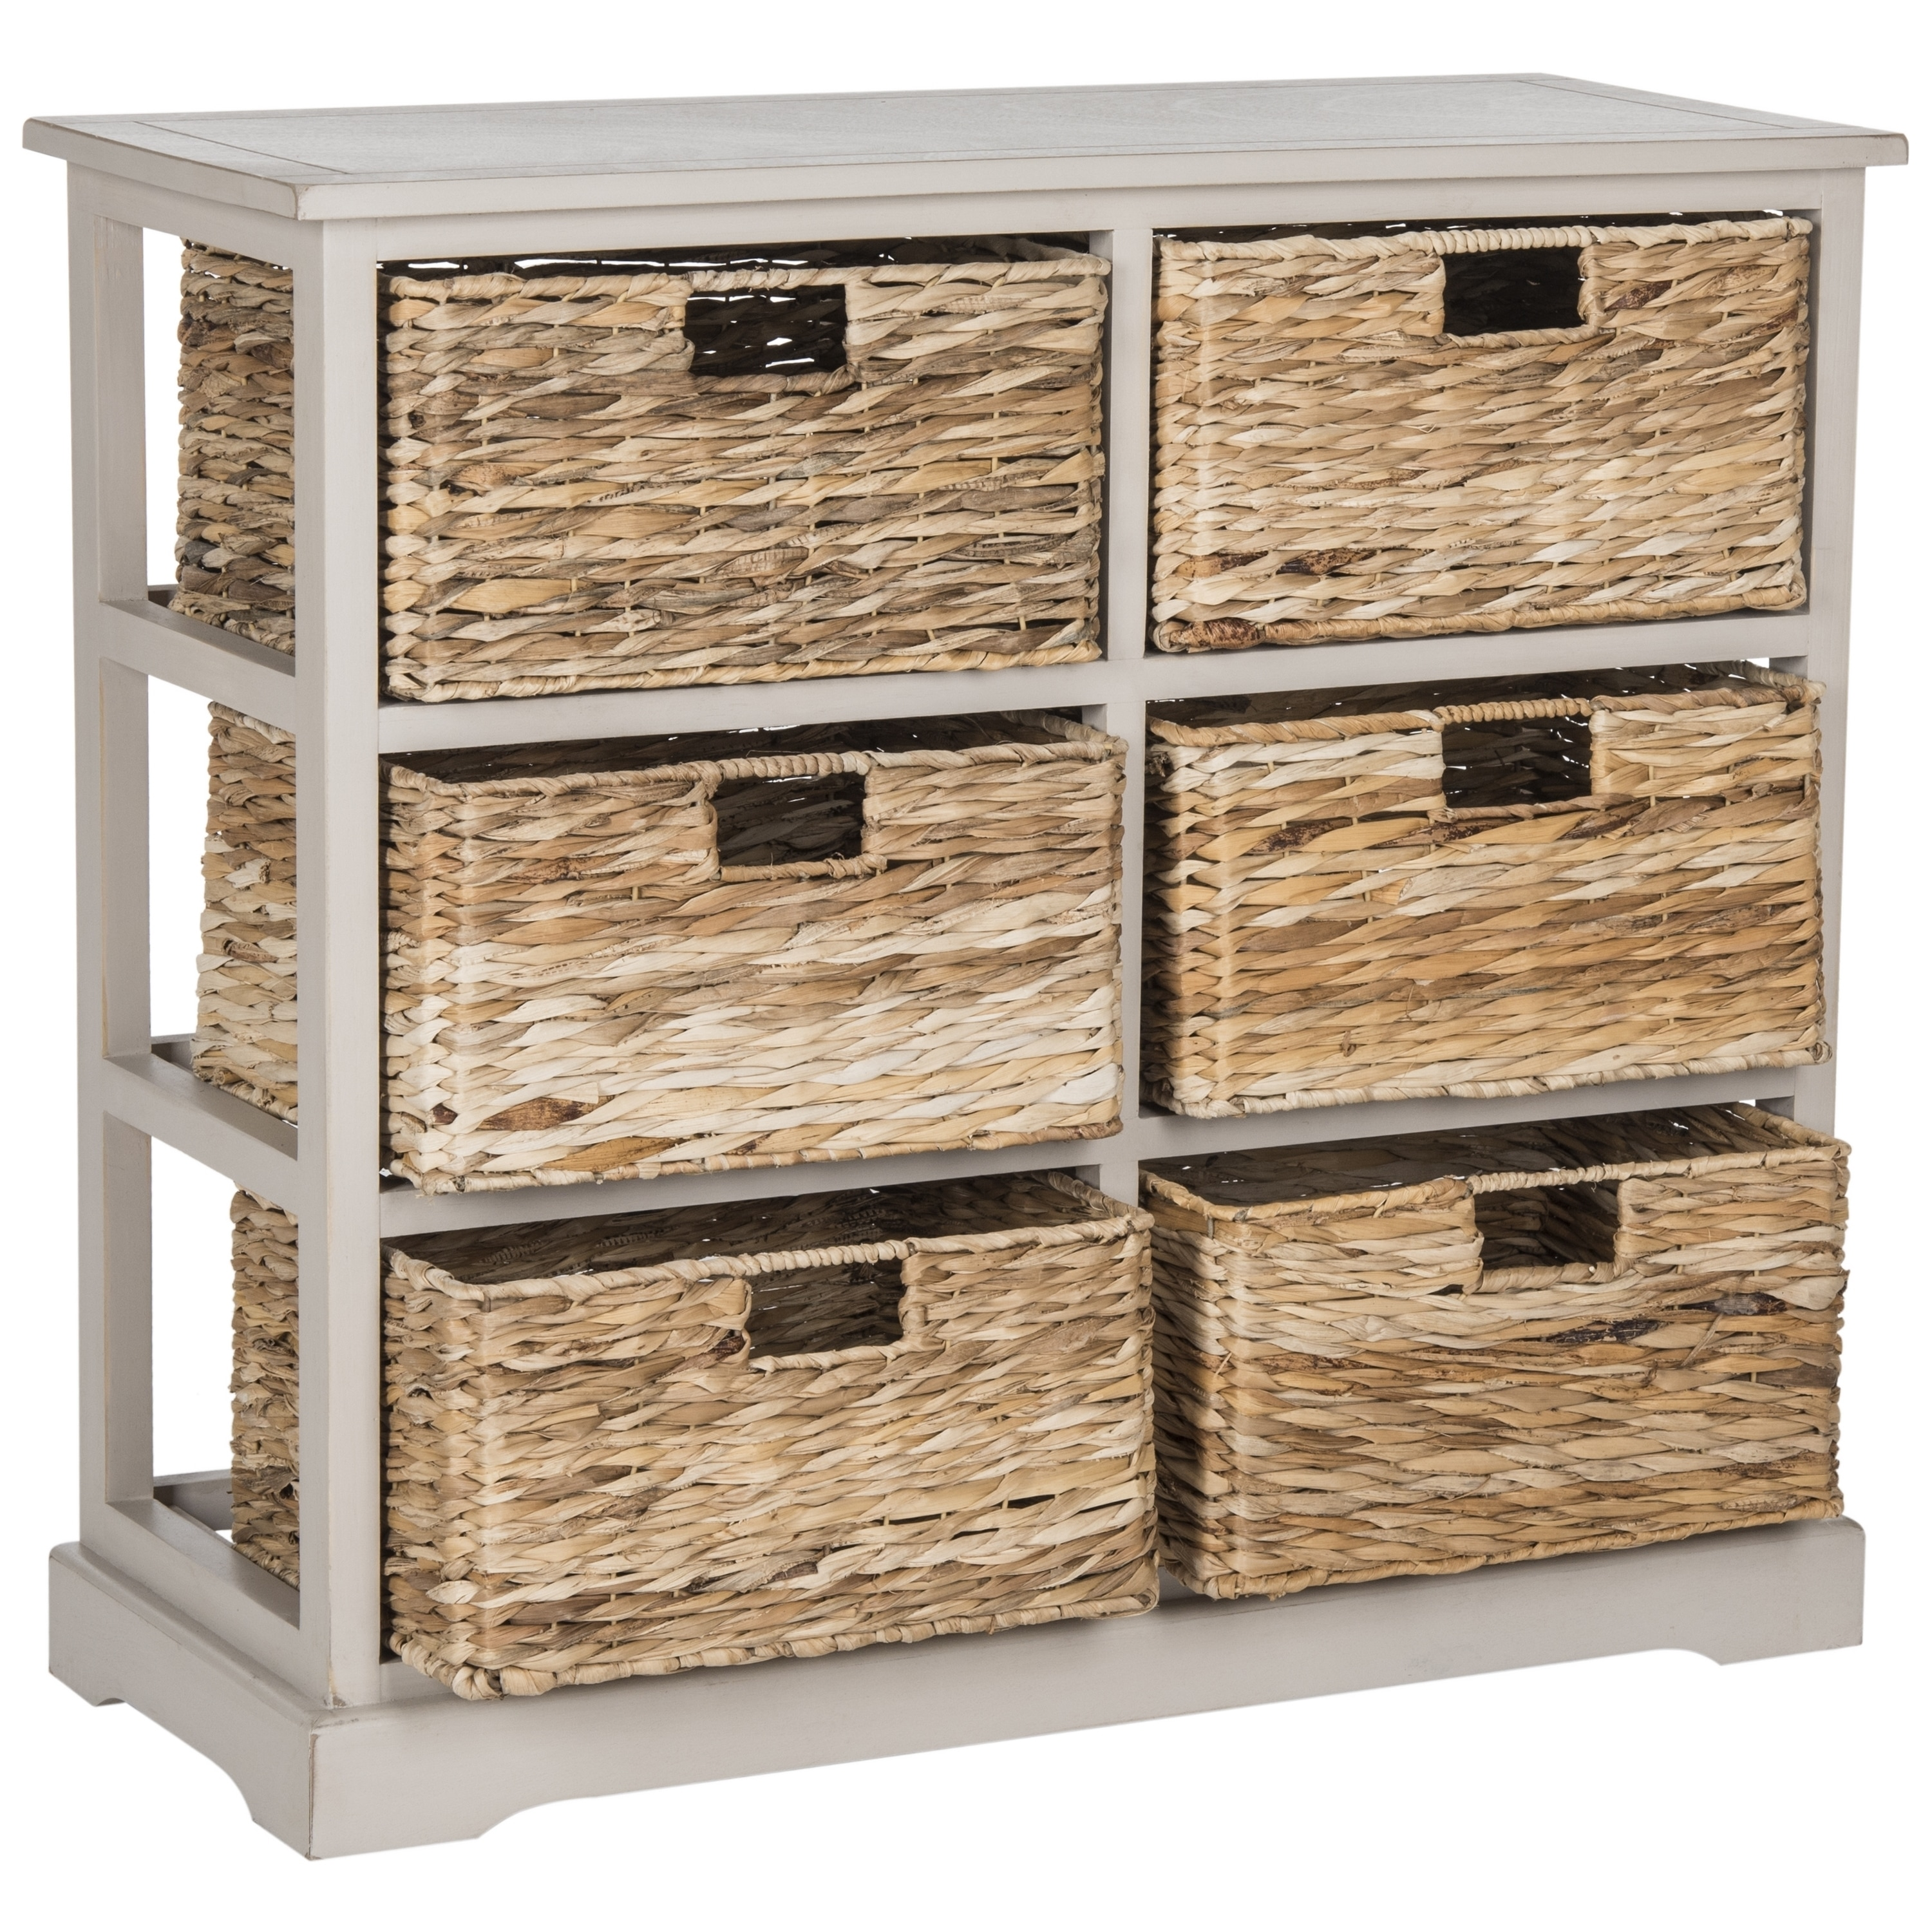 Ordinaire Shop Safavieh Keenan Vintage Grey 6 Drawer Wicker Basket Storage Chest   On  Sale   Free Shipping Today   Overstock.com   10857159